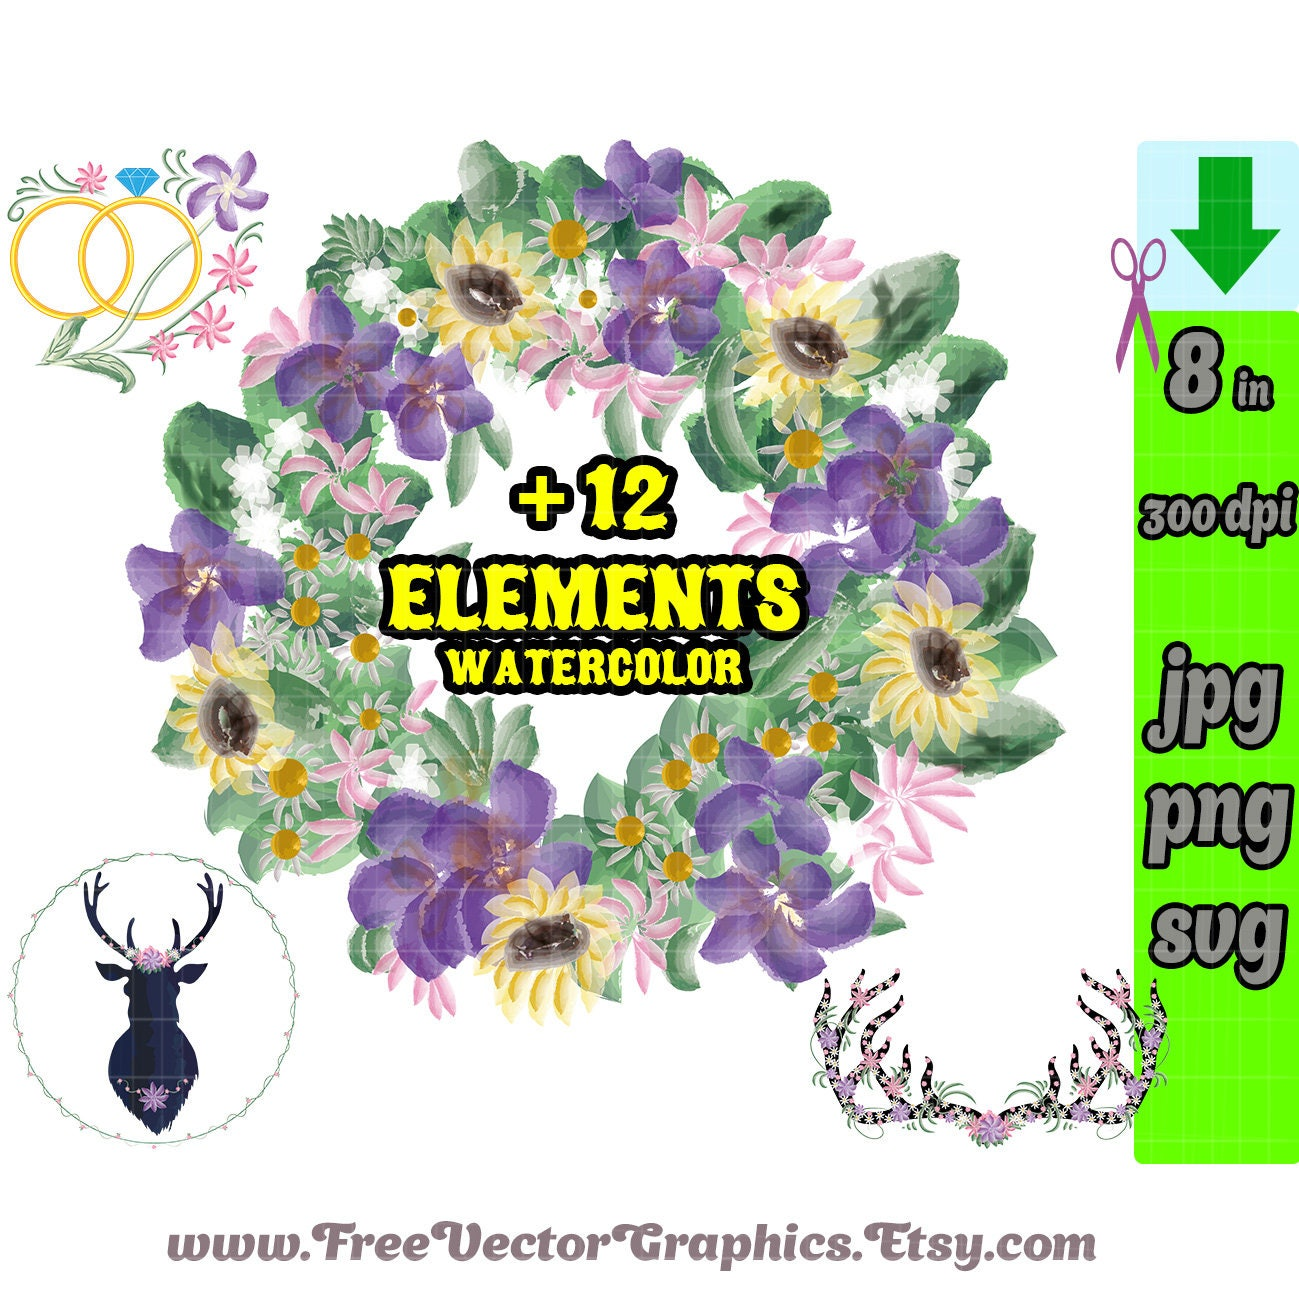 Bride Svg Png Dxf Gold Rustic Watercolor Floral Wedding Clipart Purple Flower Boho Clip